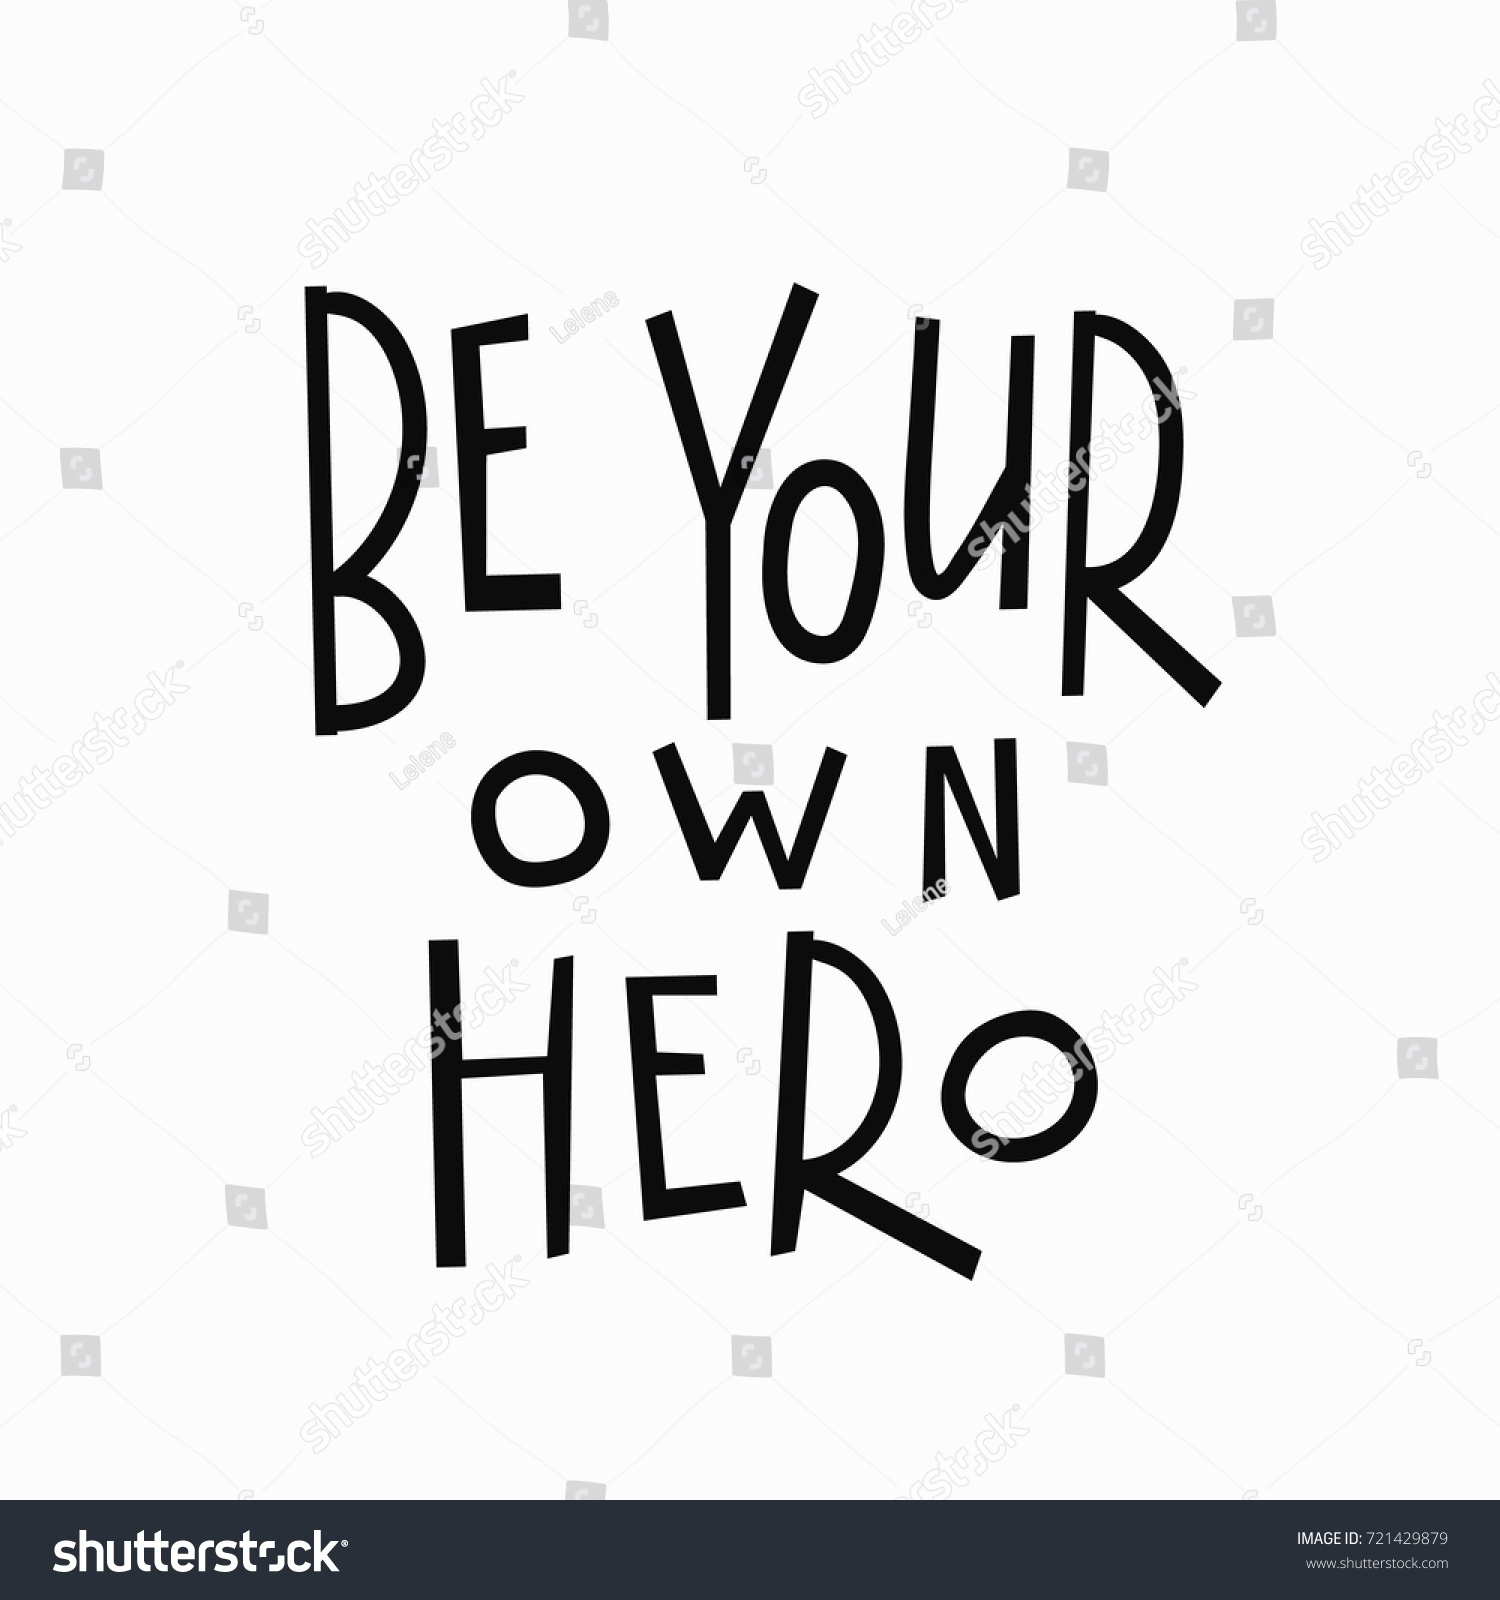 Stock Quote For T: Be Your Own Hero Tshirt Quote Stock Vector 721429879